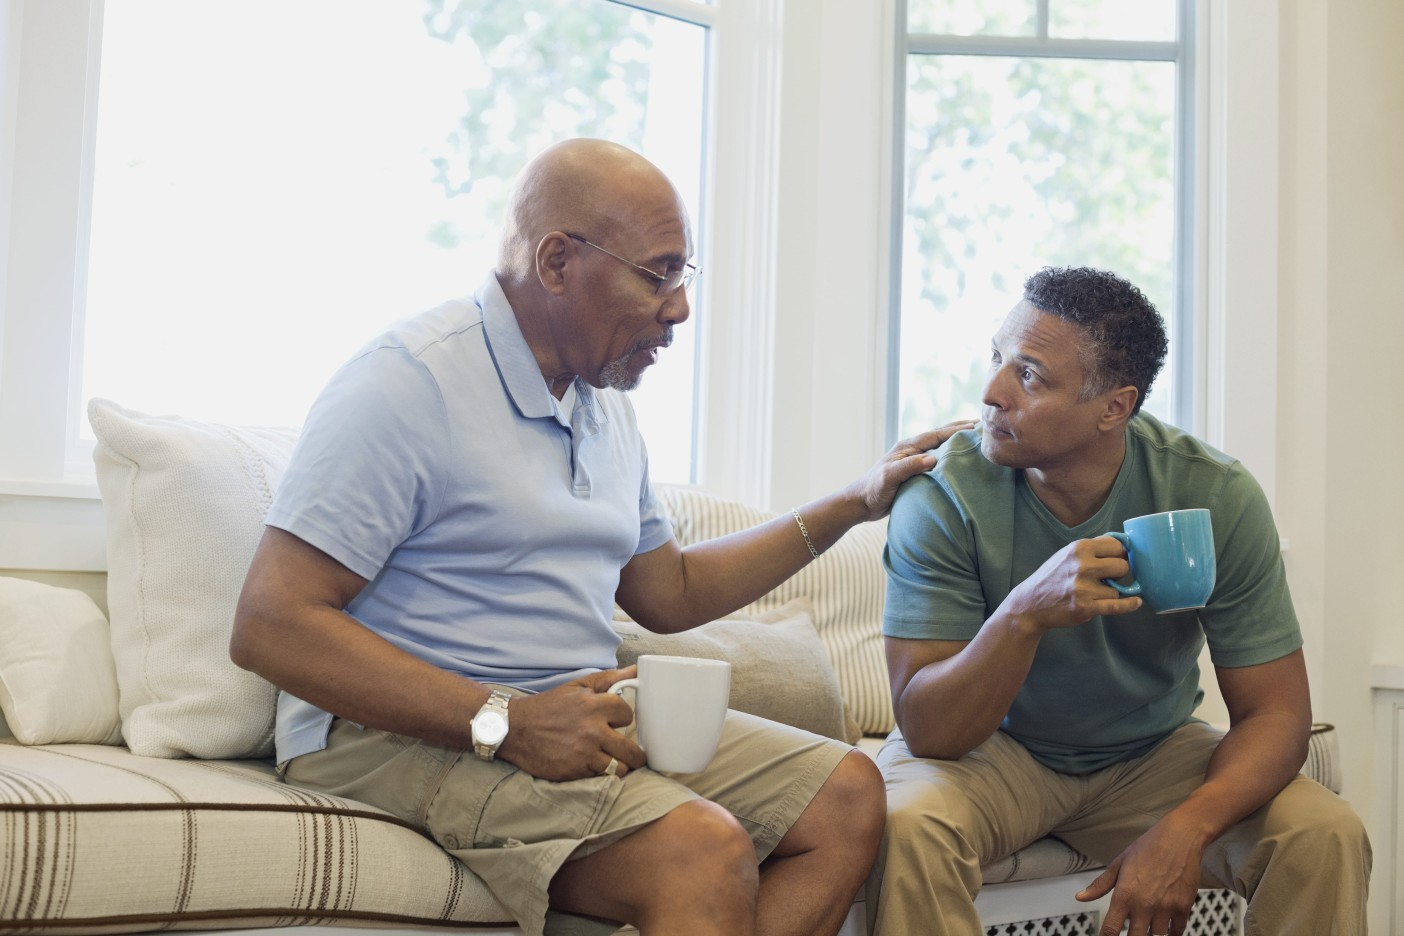 Two men drinking coffee discuss brain cancer support groups in a well lit living room